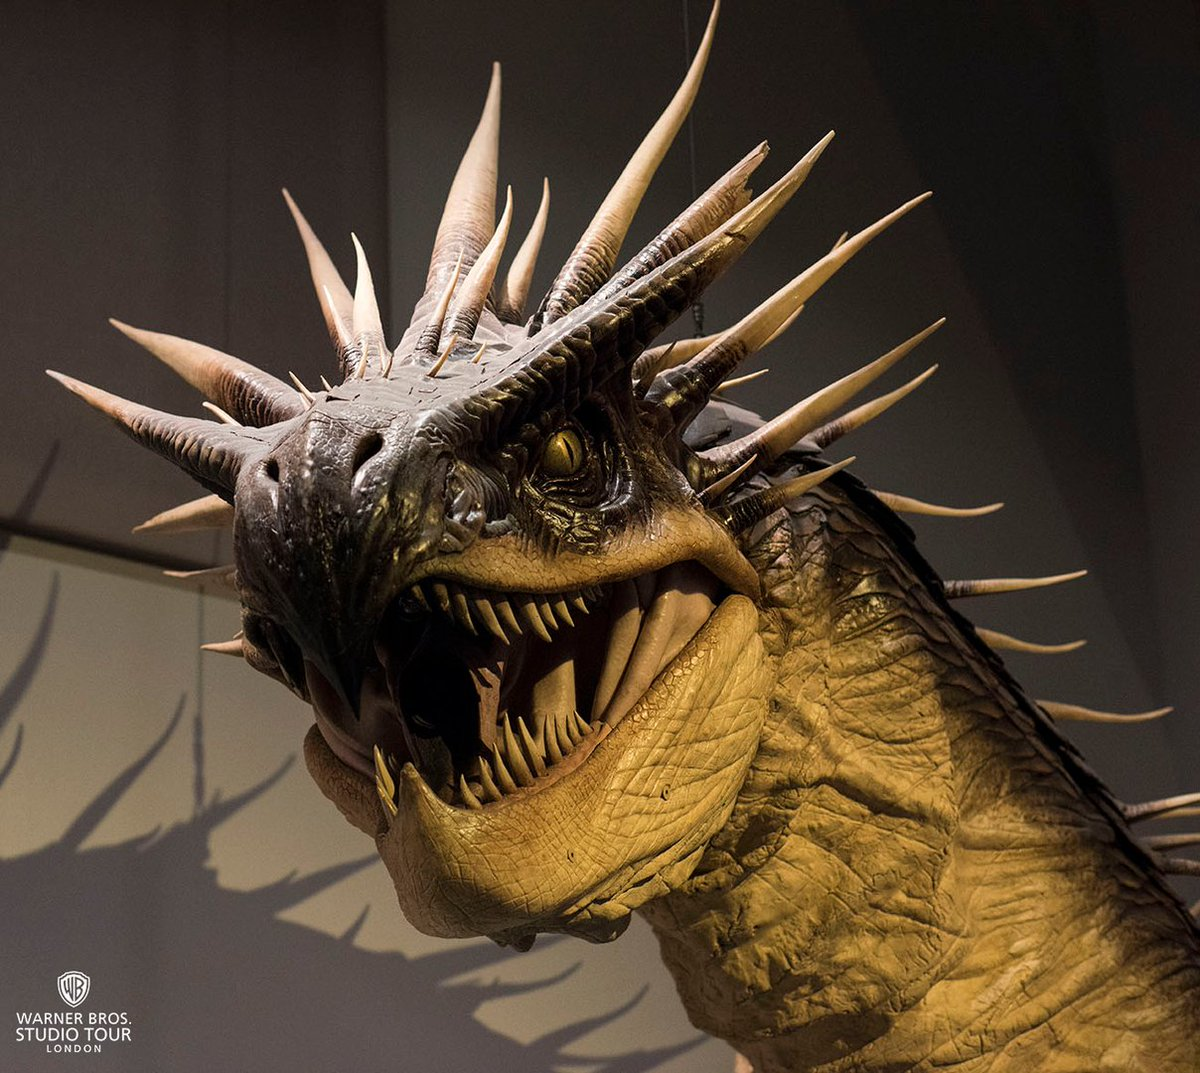 pottermore on twitter a real life dragon now that s movie magic